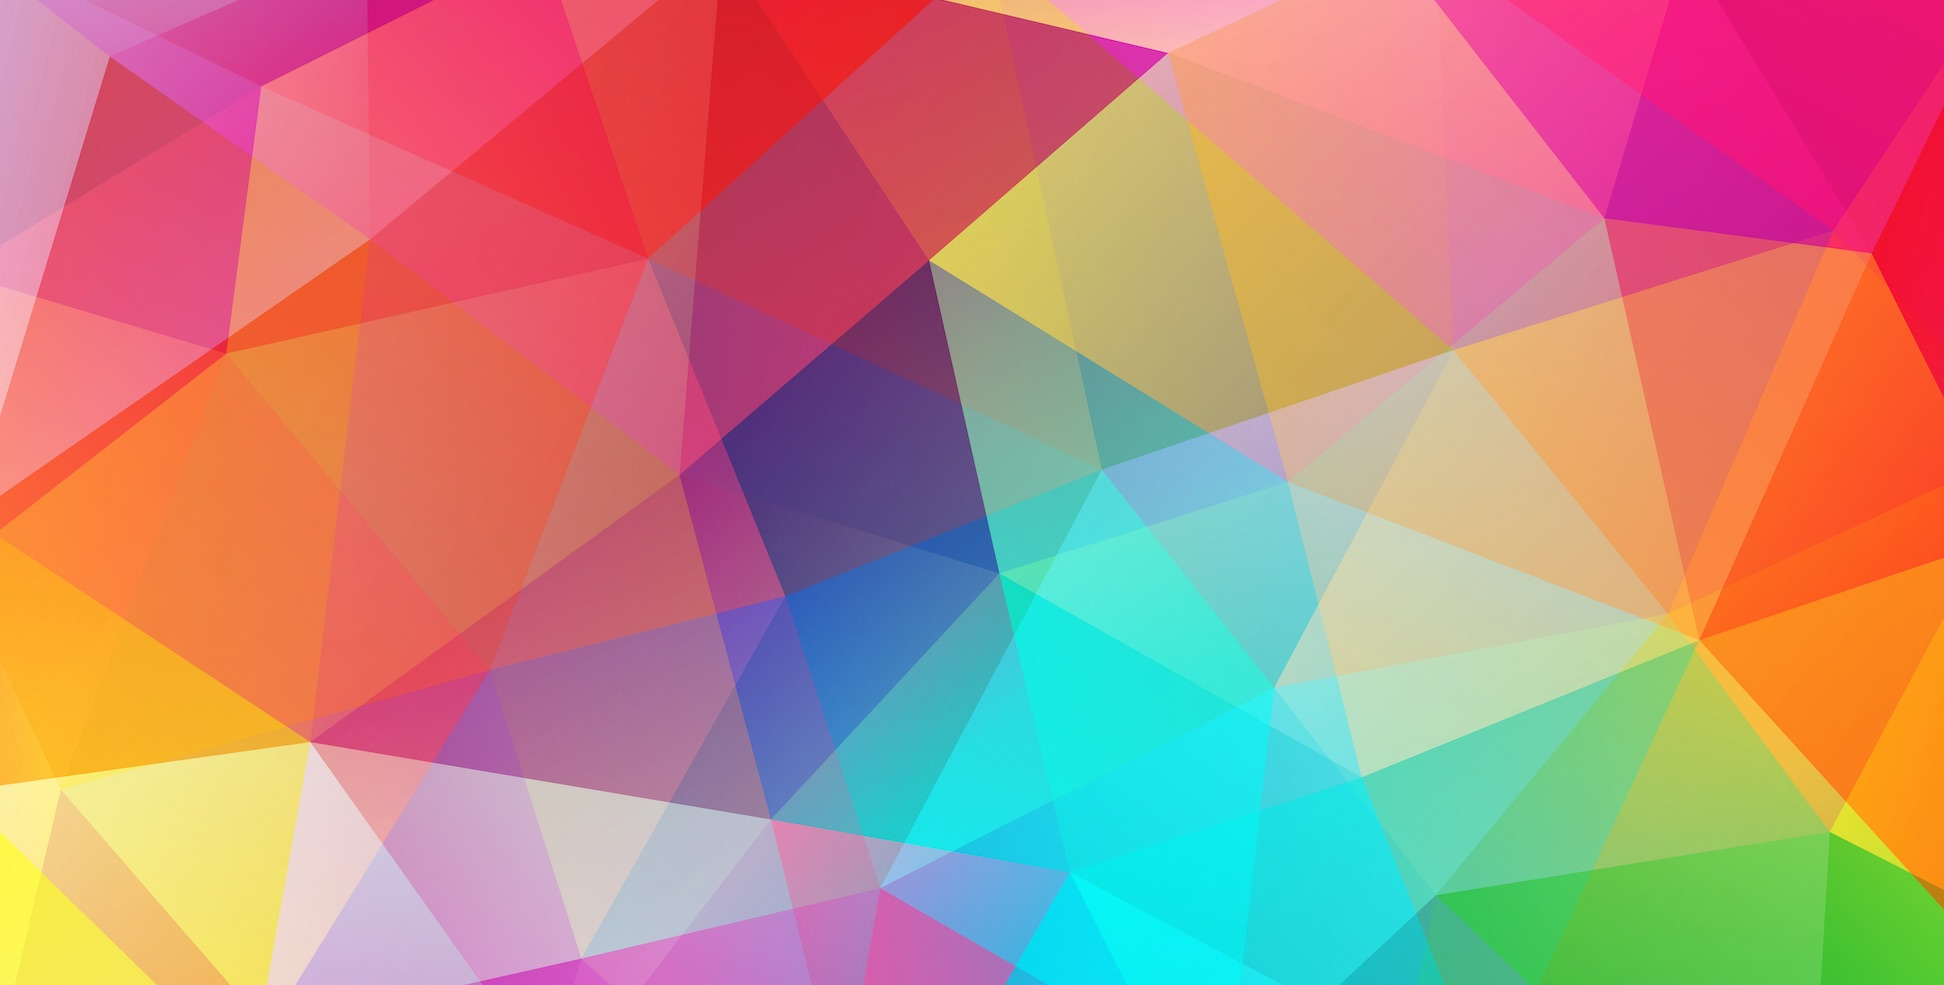 Web Design Color Theory: How To Create The Right Emotions